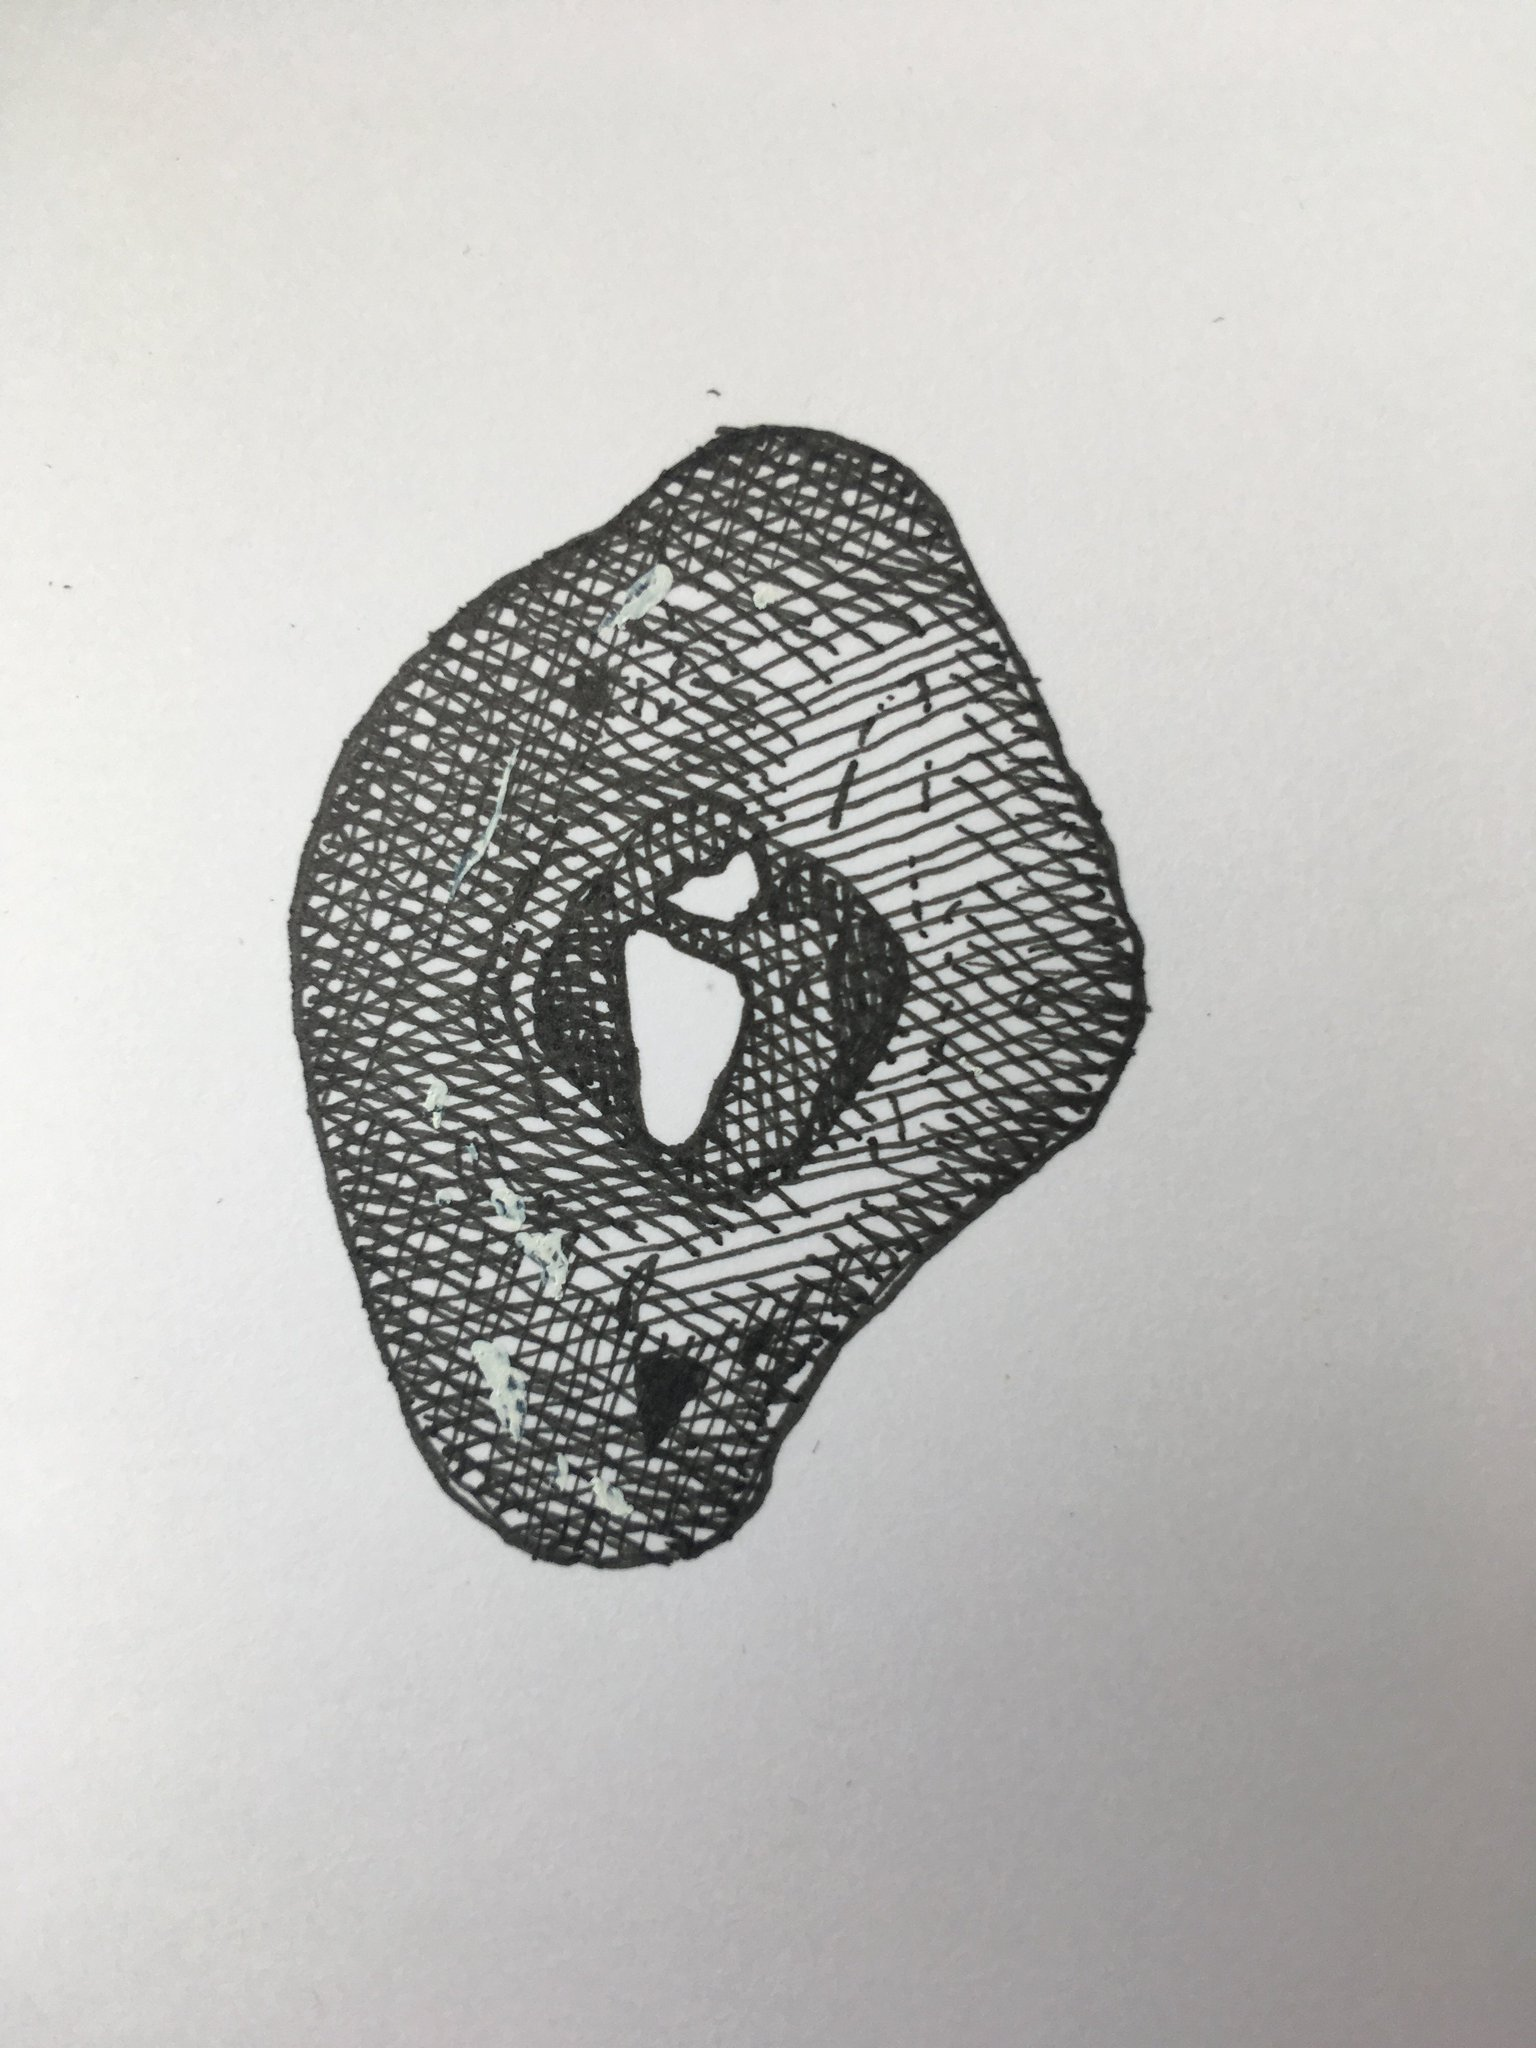 Robert Macfarlane On Twitter Word Of The Day Adder Stone Also Hagstone Holy Stone Huhnergott Chicken Stone German A Stone Usually A Flint With A Naturally Occurring Hole Through It Associated In Folklore With Crayon of stone i made crayon like arakawa river's stone. adder stone